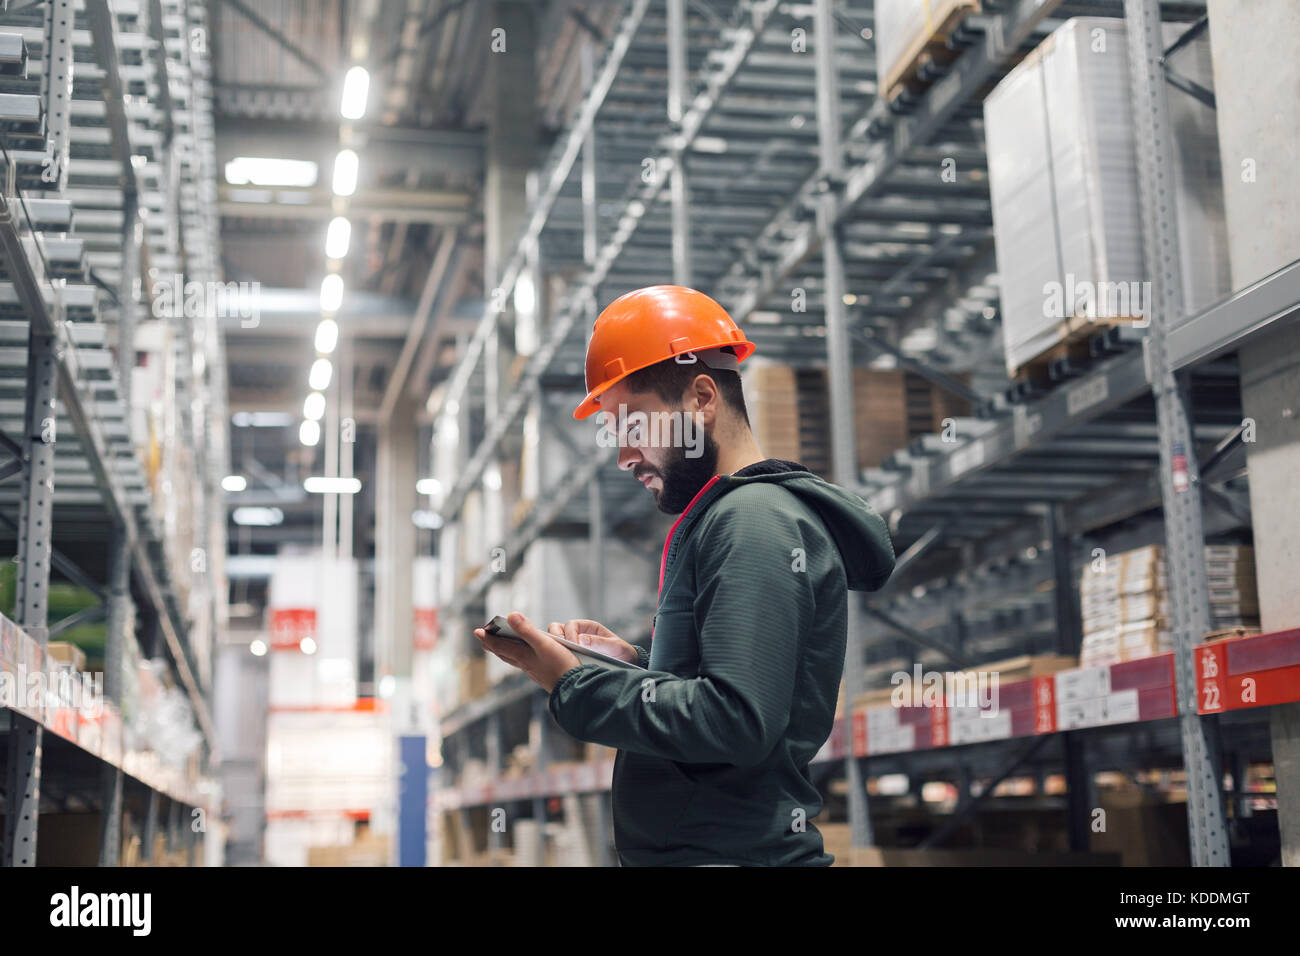 wholesale, logistic, people and export concept - manager or supervisor with tablet at warehouse - Stock Image